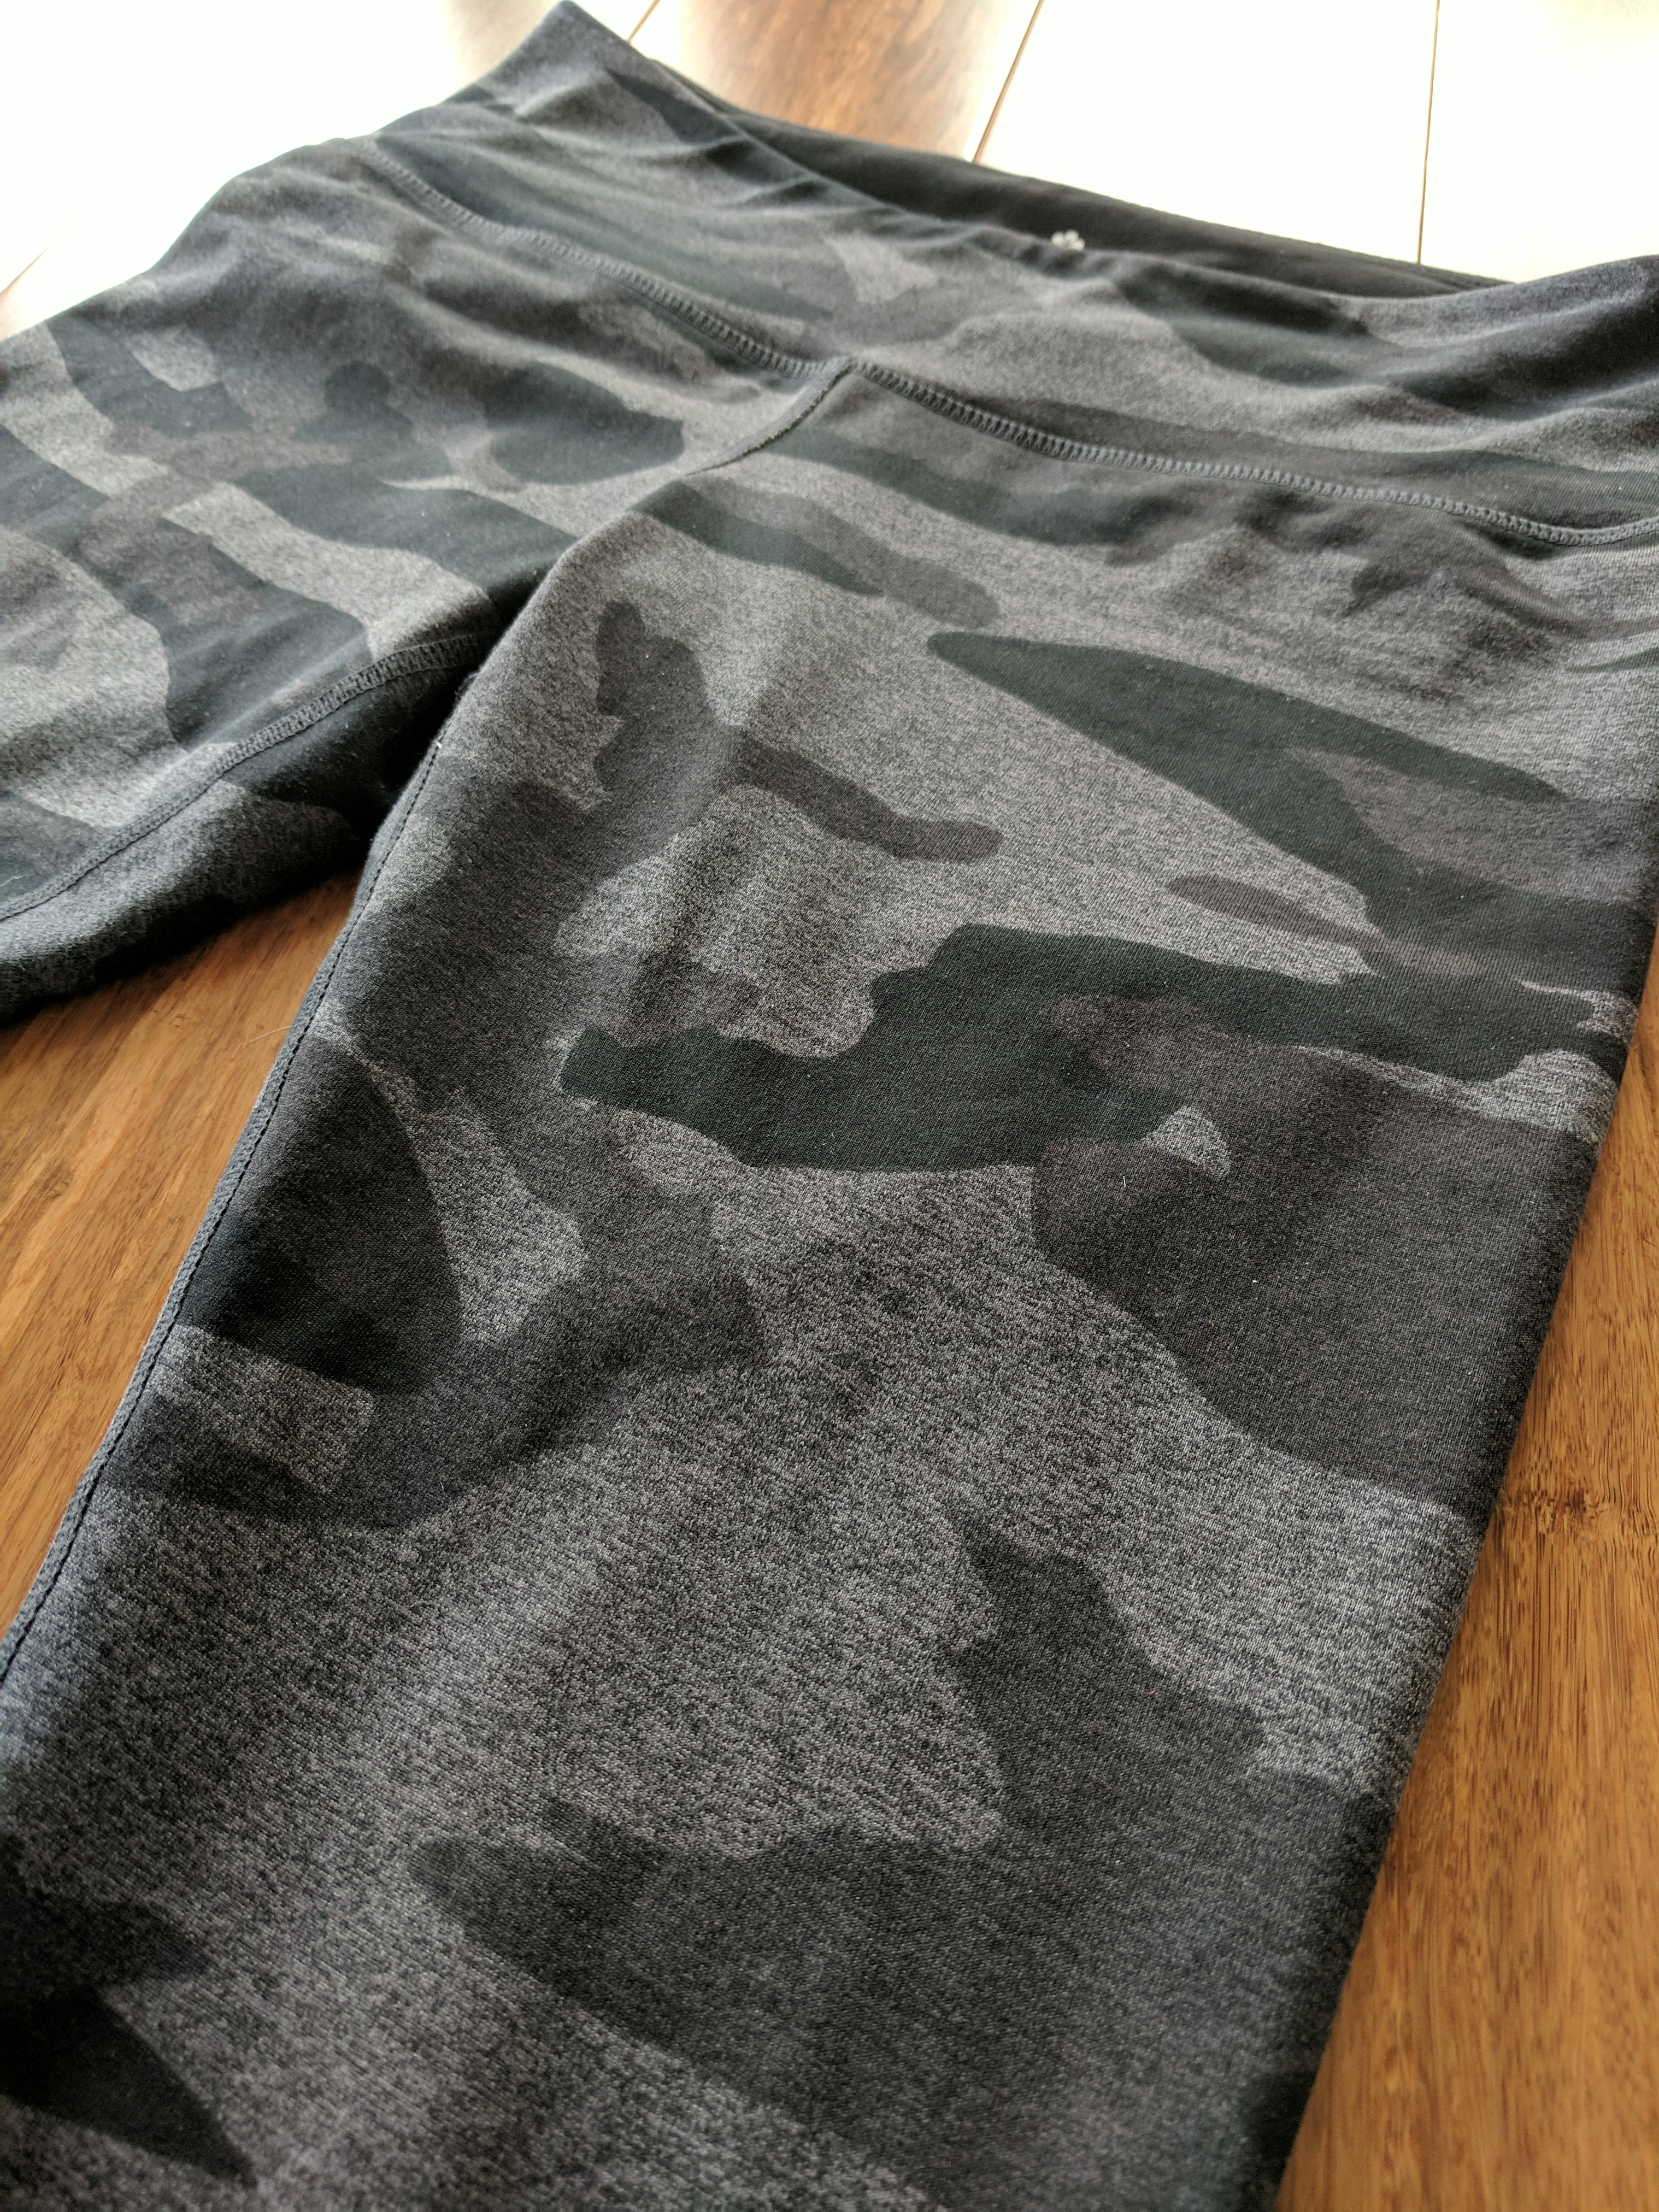 tuff athletics leggings review camo mix grey pattern